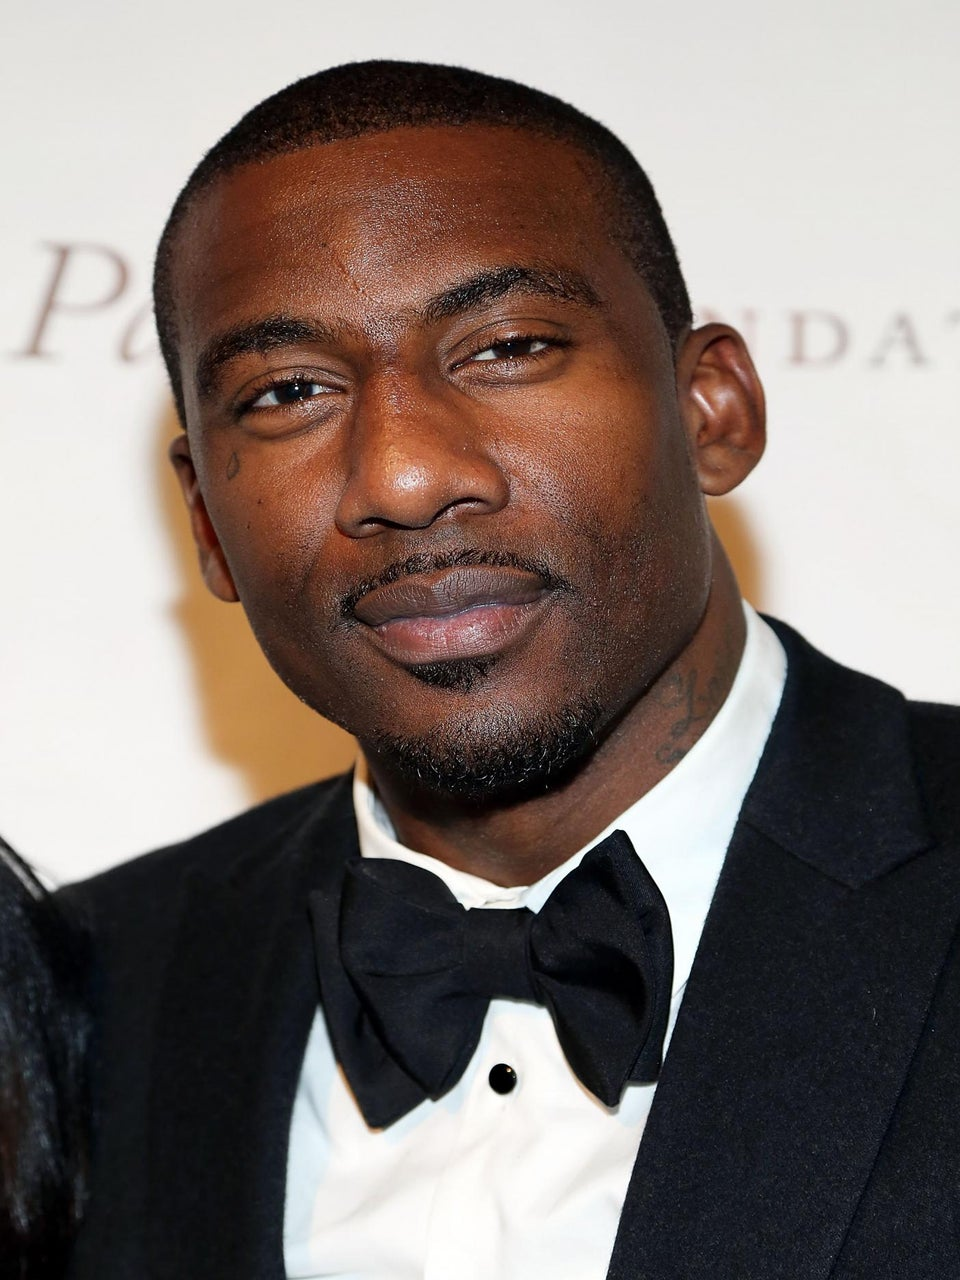 Cooking With Amar'e Stoudemire, His Recipe for Jump Shot Jerk Chicken